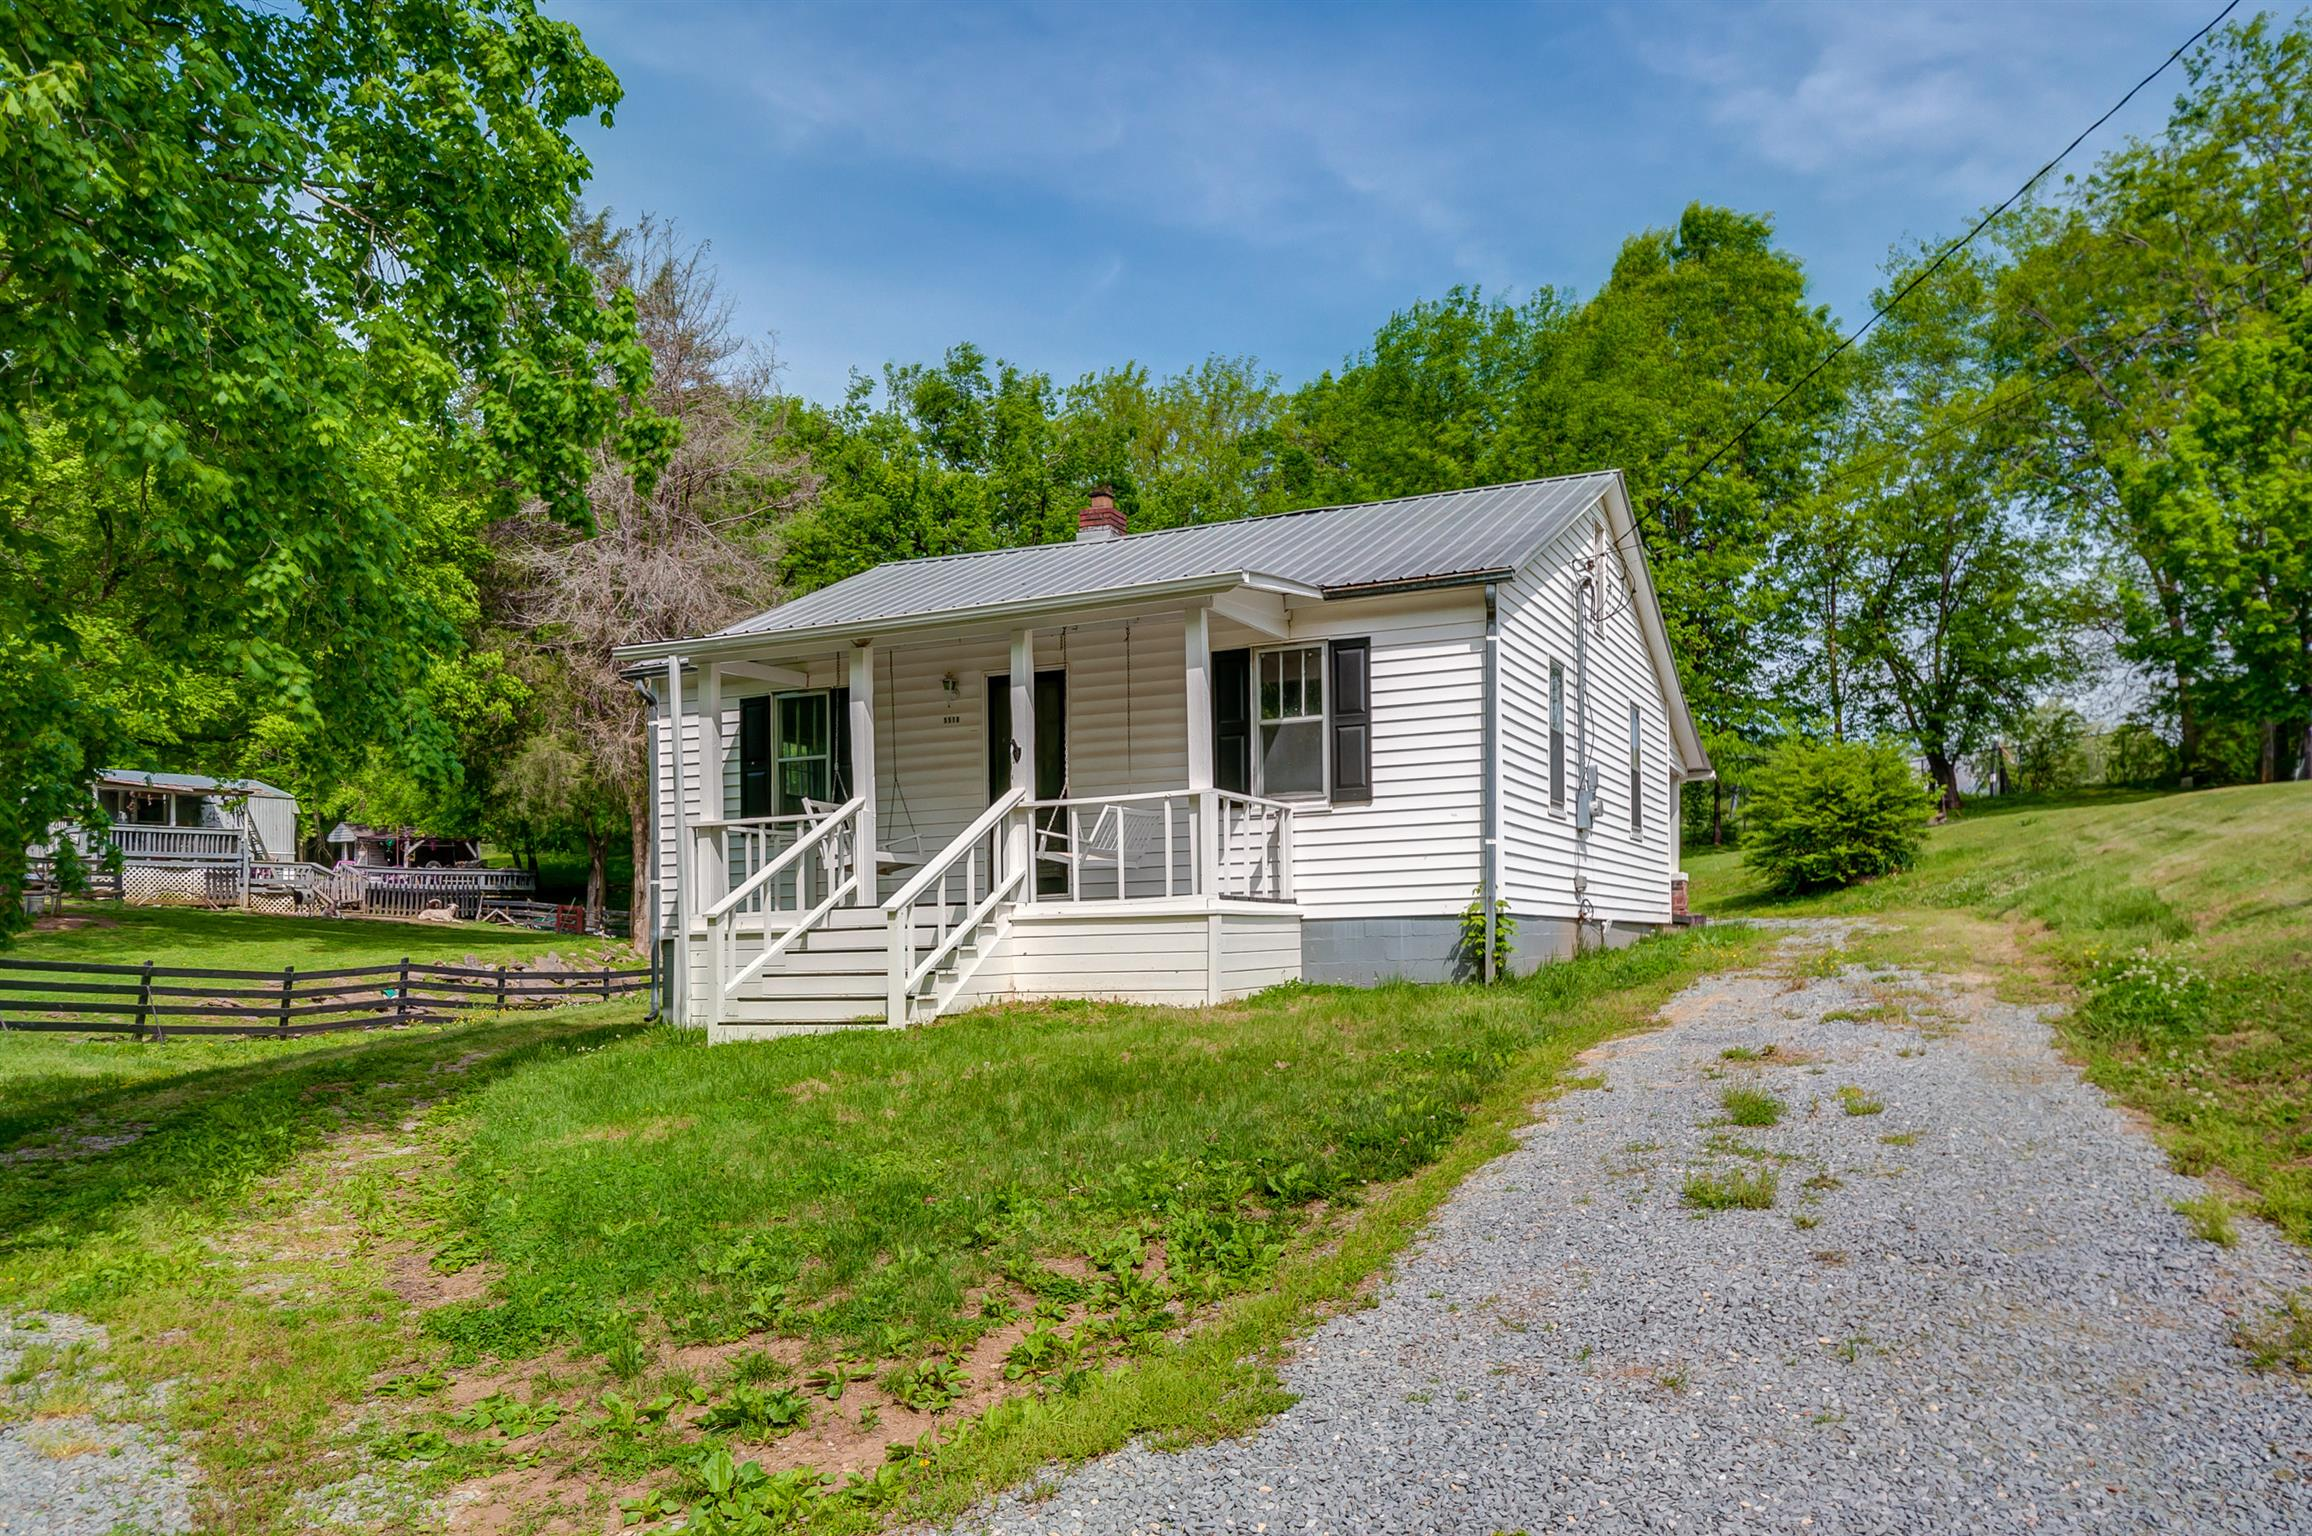 $359,000 - 2Br/1Ba -  for Sale in Leipers Fork, Franklin